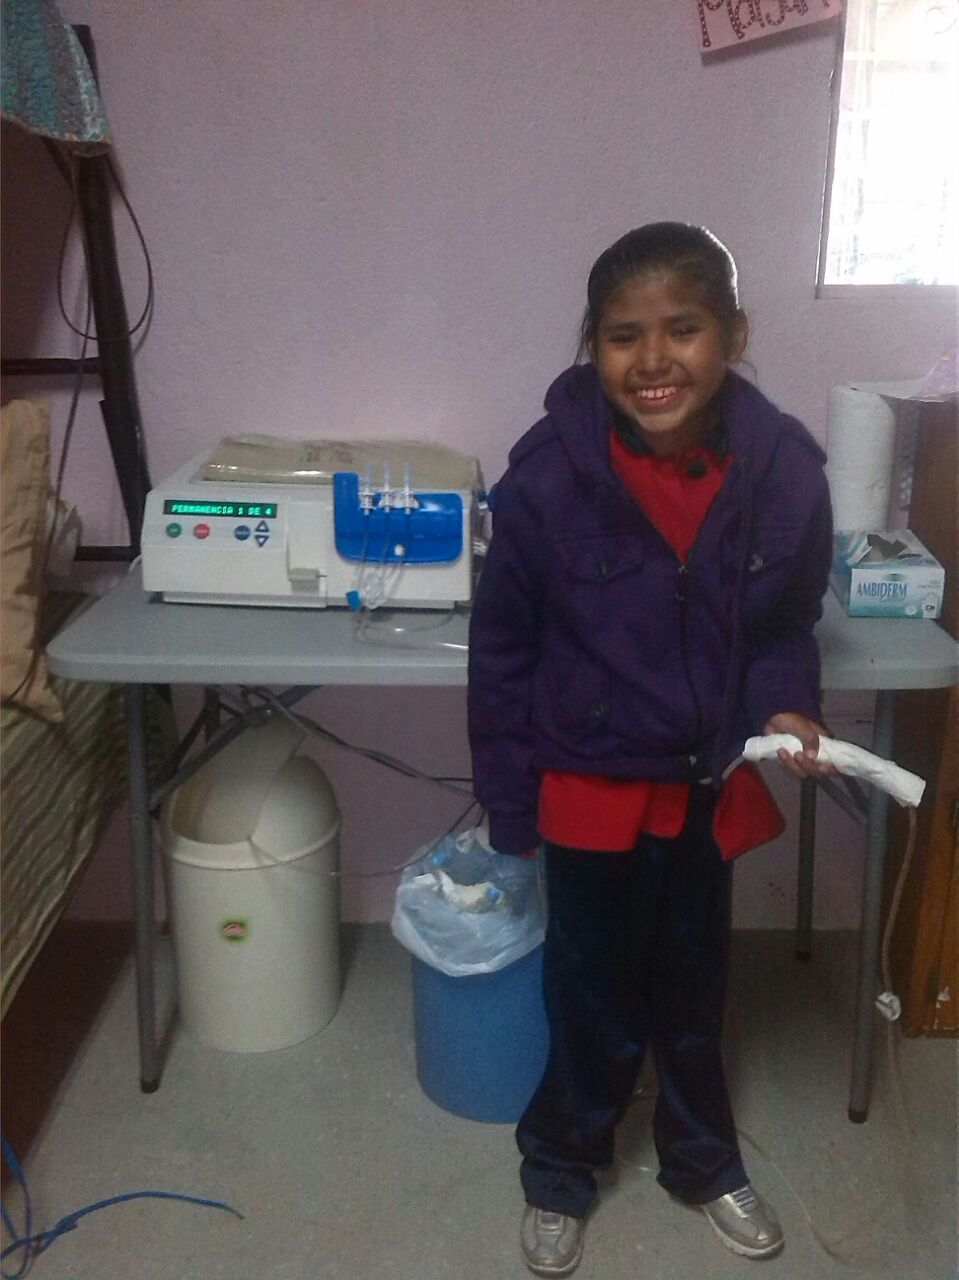 Sindy 2 with her catheter working again. We are blessed for them!